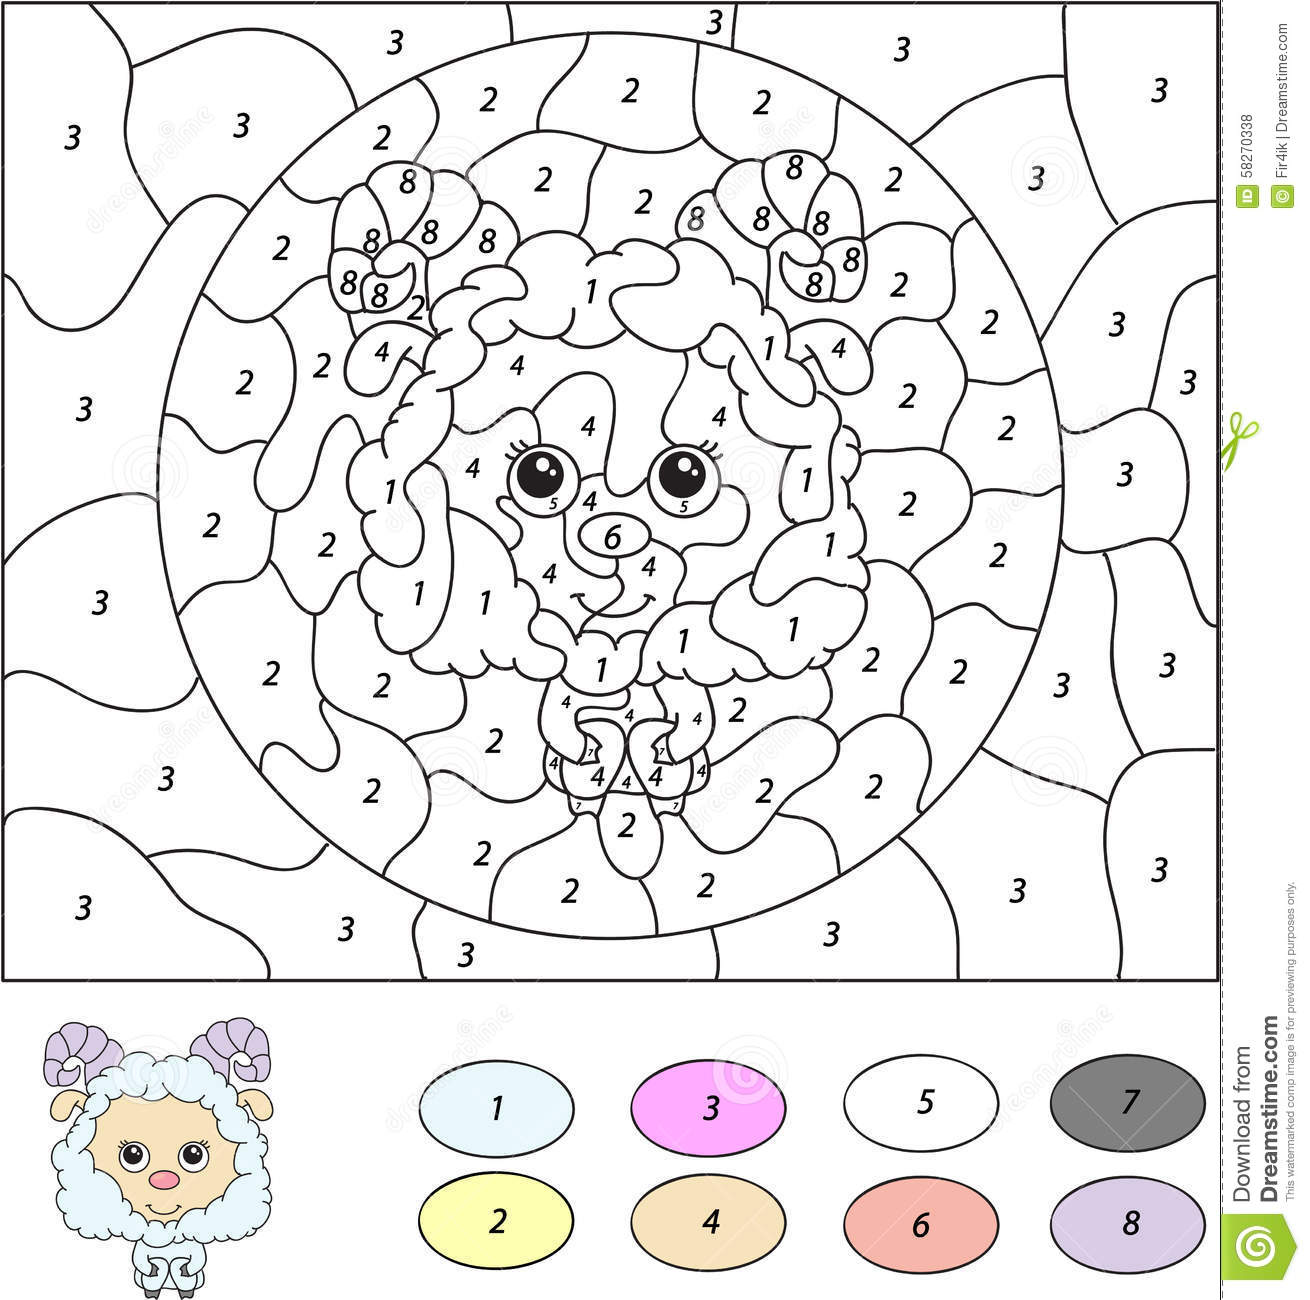 Uncategorized Color By Number Games color by number educational game for kids cute lamb ram sheep sheep